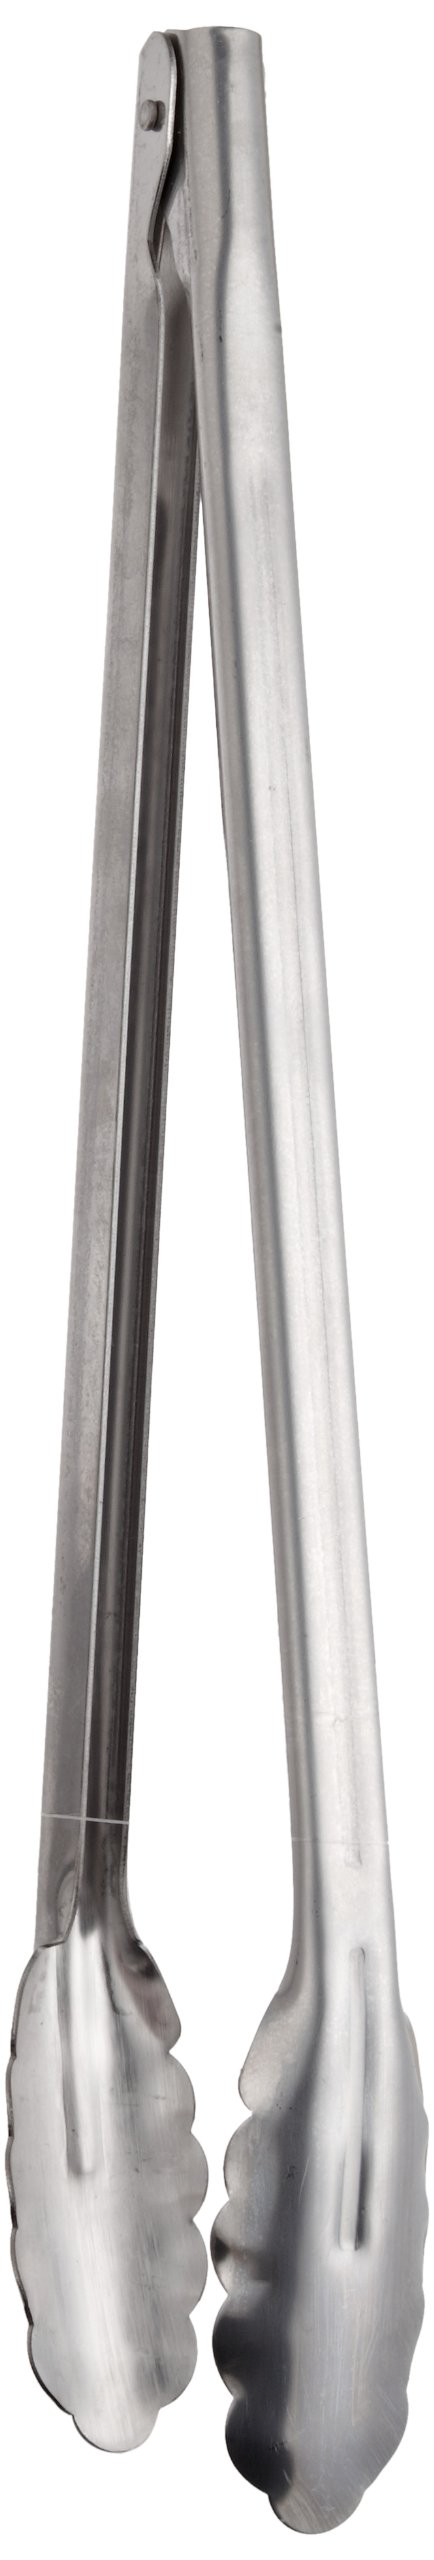 Adcraft XHT-16 16'' Long, Extra Heavy Stainless Steel Utility Tong